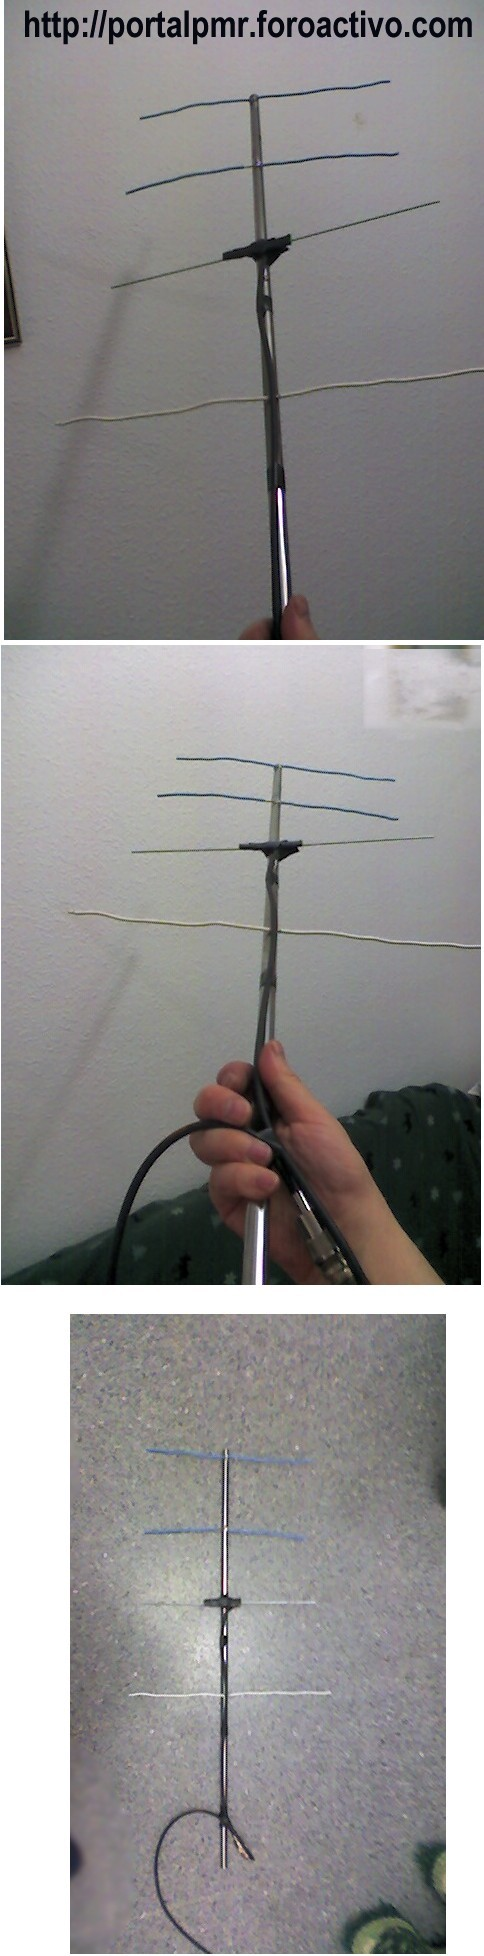 SIMPLE ANTENA DIRECTIVA LOW COST Direct10